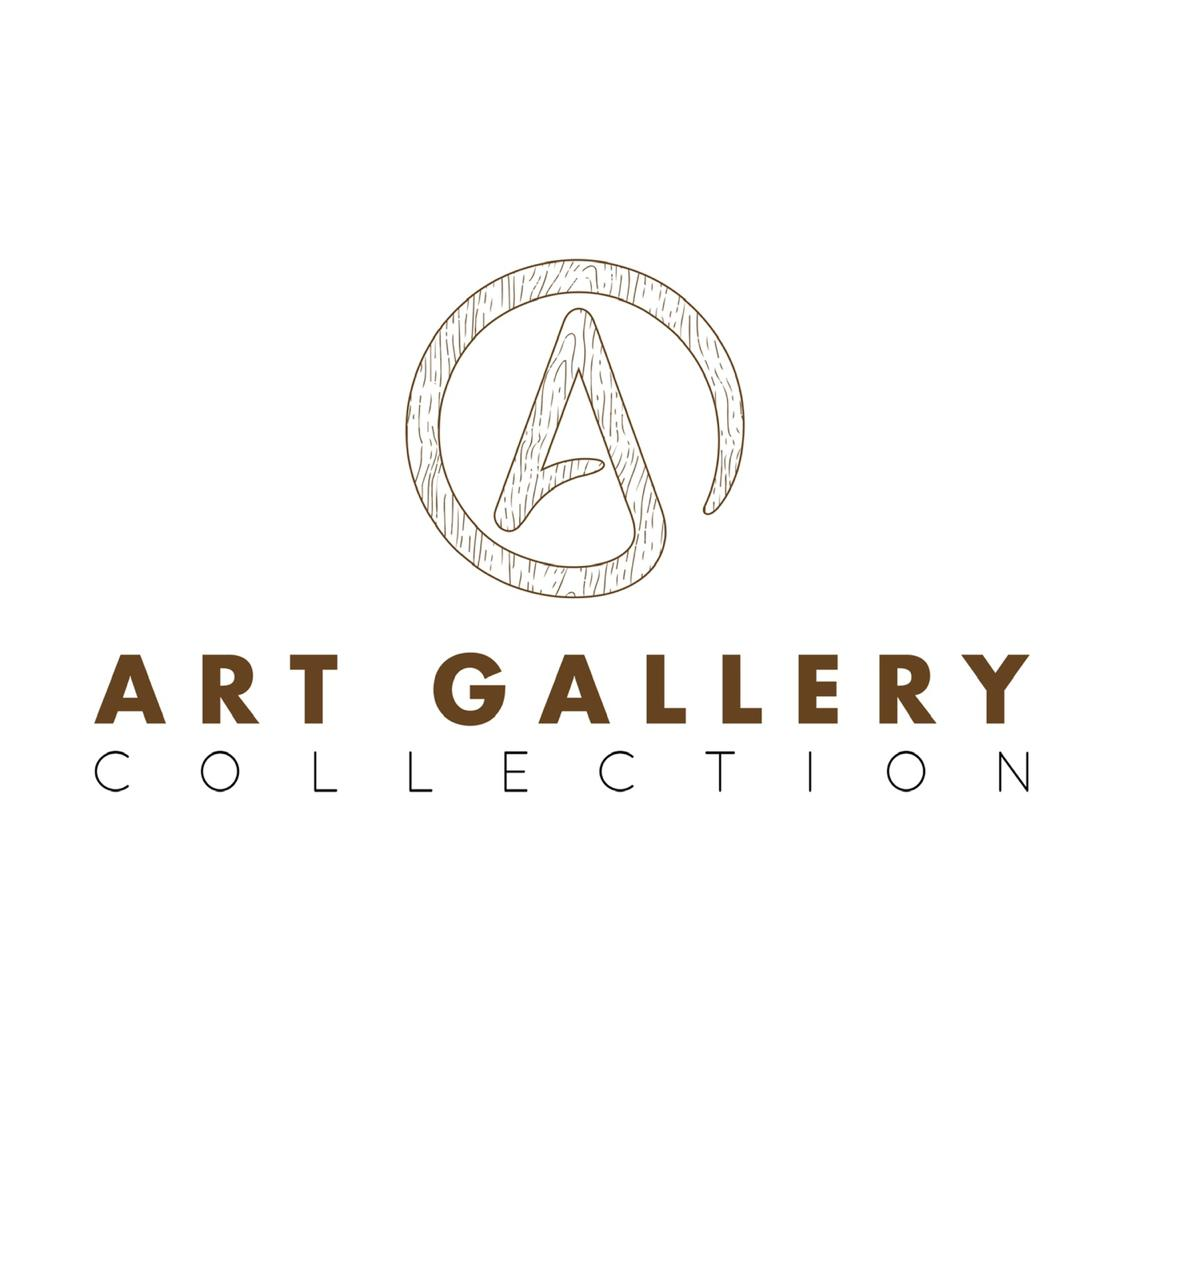 Art Gallery Collection